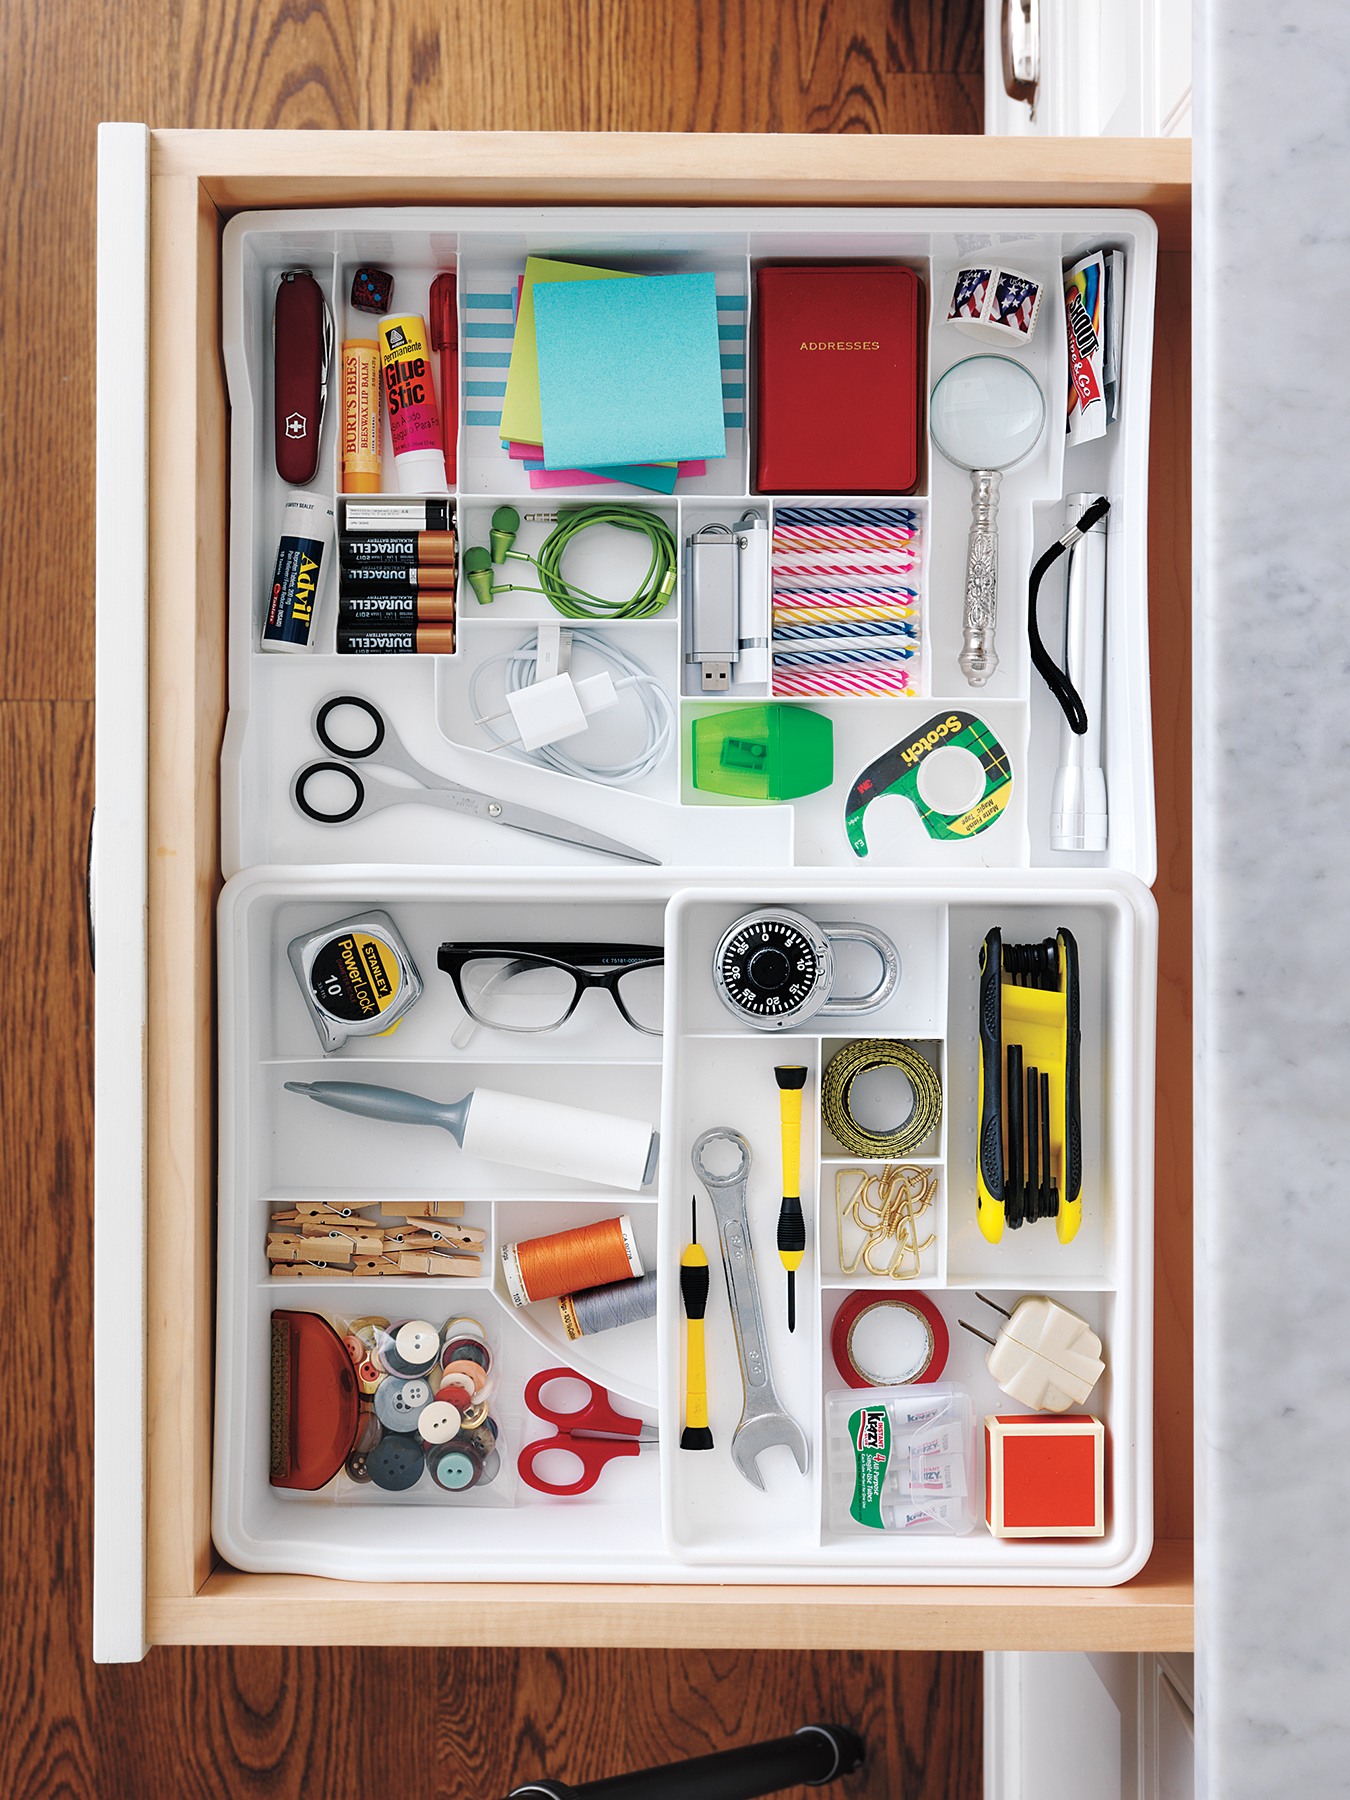 15 Articles To Help Organize Your Home For The New Year: 15 Organizing Ideas For Your Drawers